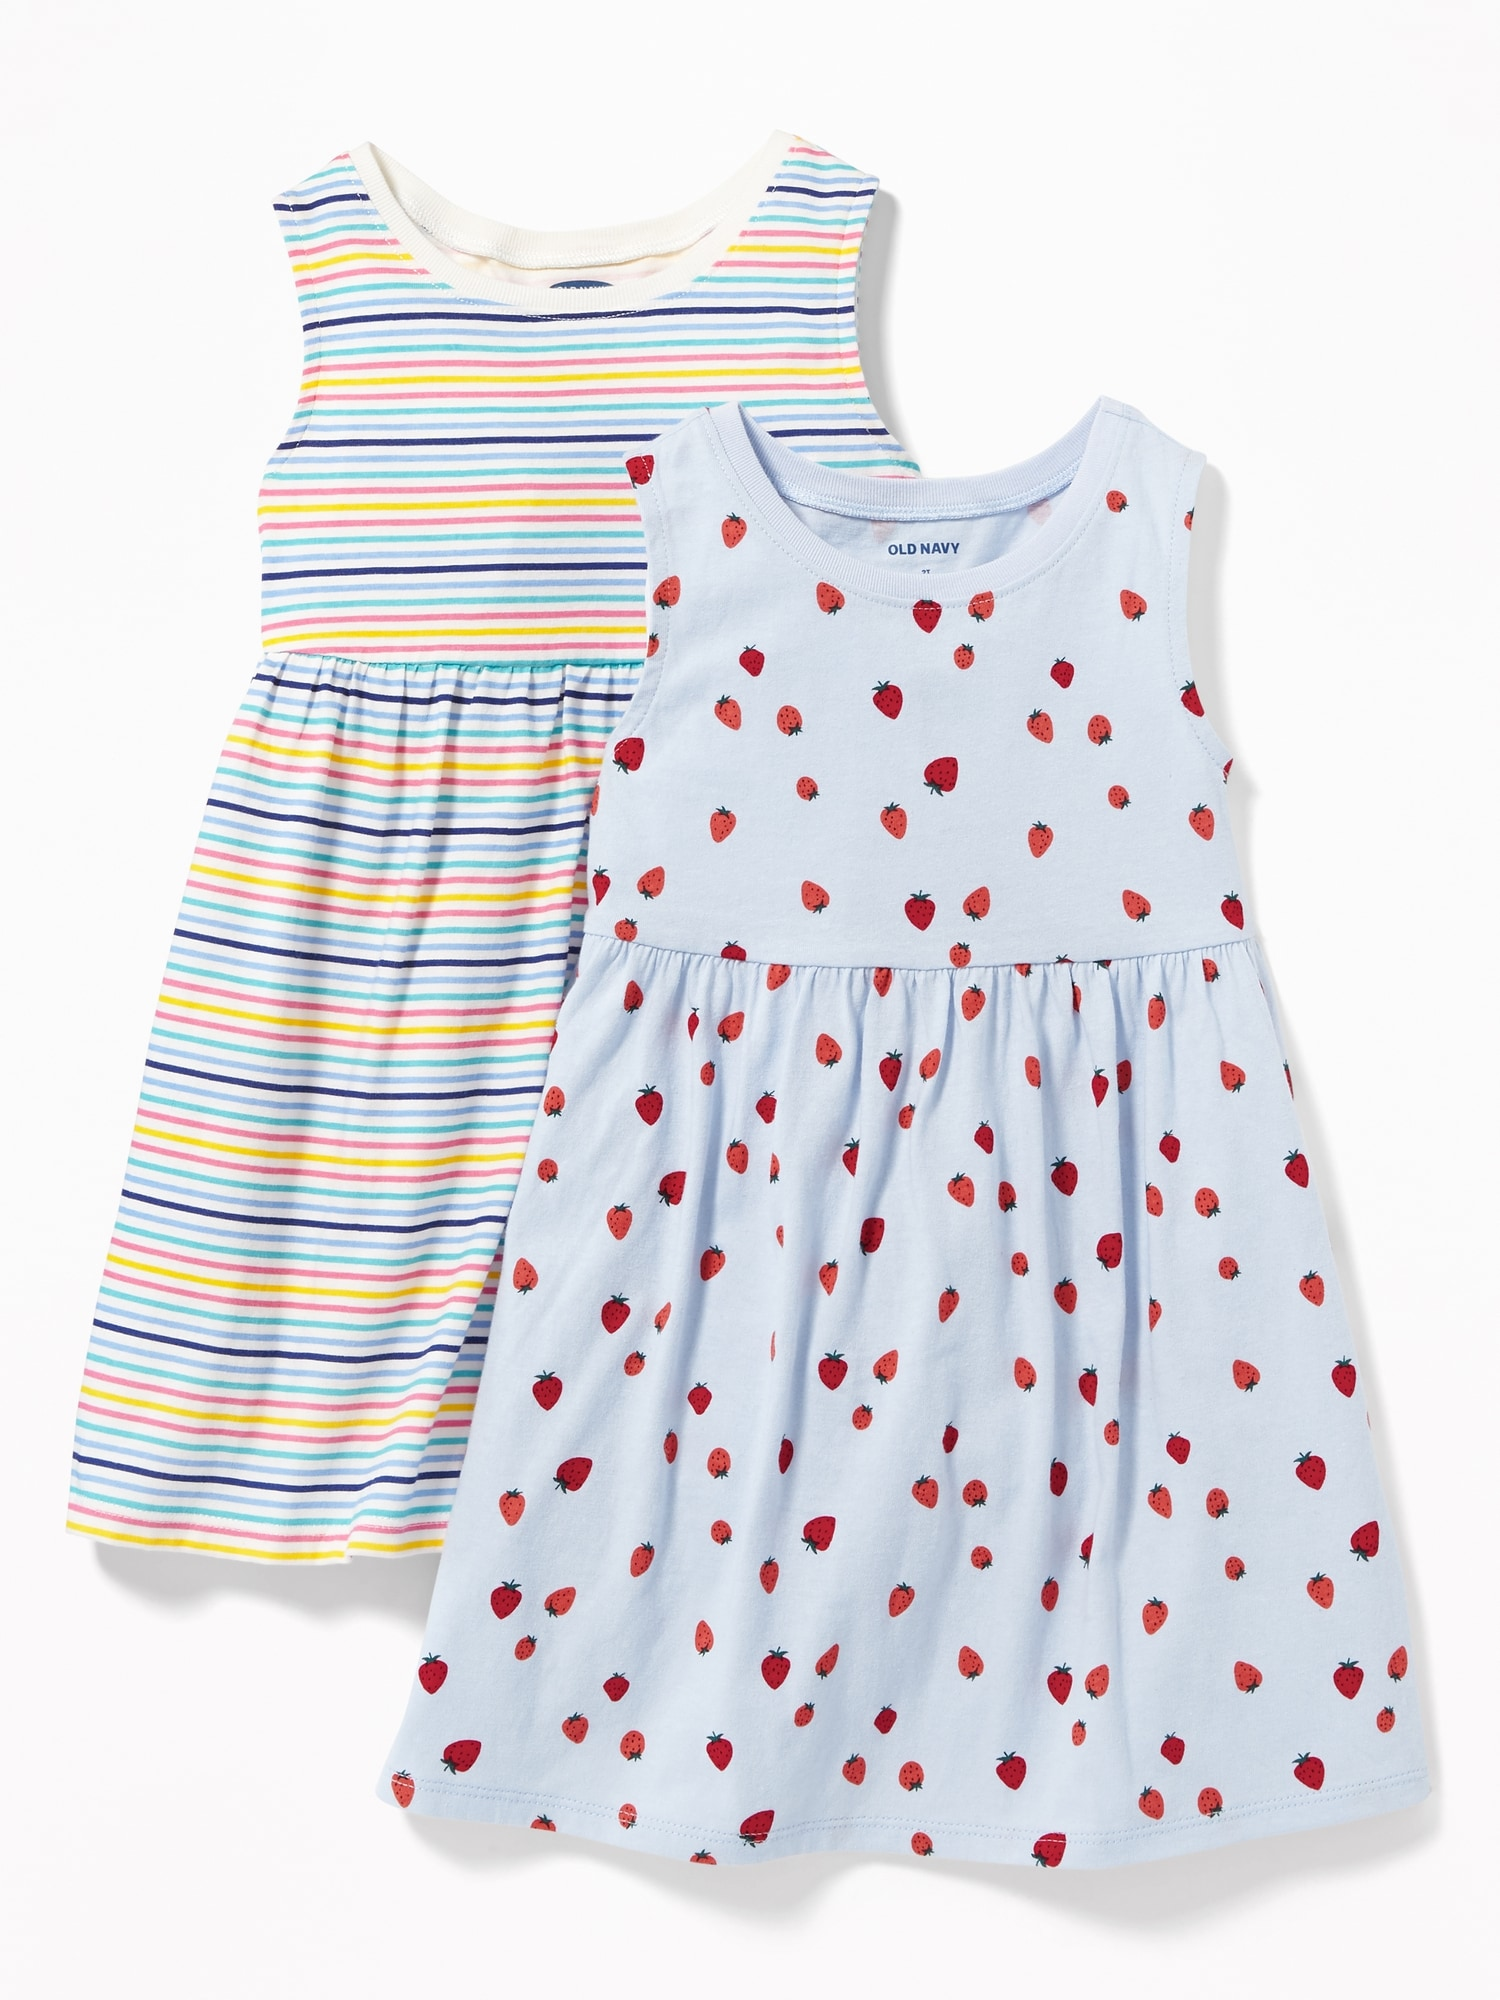 4c49b01eb 2-Pack Printed Sleeveless Fit & Flare Dress for Toddler Girls | Old Navy